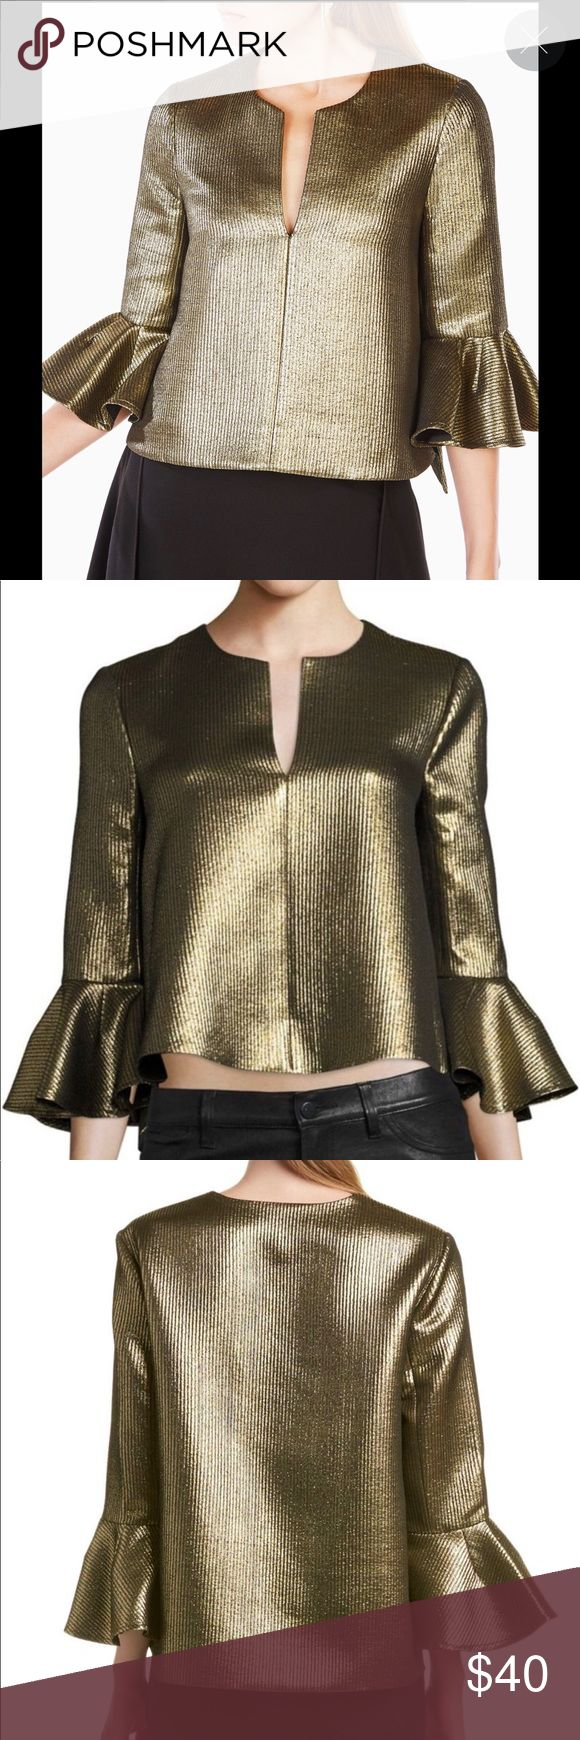 NWOT BCBG Valari Metallic Top NWOT BCBG Valari Metallic Bell Sleeve Top. This items is brand new and has never been worn. This is the perfect top for the holiday season and NYE. The gold finish and bell sleeve detail provide such a festive feel. Looks great with jeans or a skirt.  Crafted from a light catching Metallic jacquard this voluminous High-Low Top is punctuated with exaggerates ruffles sleeves and a plunging split neckline. Poly/cotton/metallic woven jacquard. Washable. Dry clean…